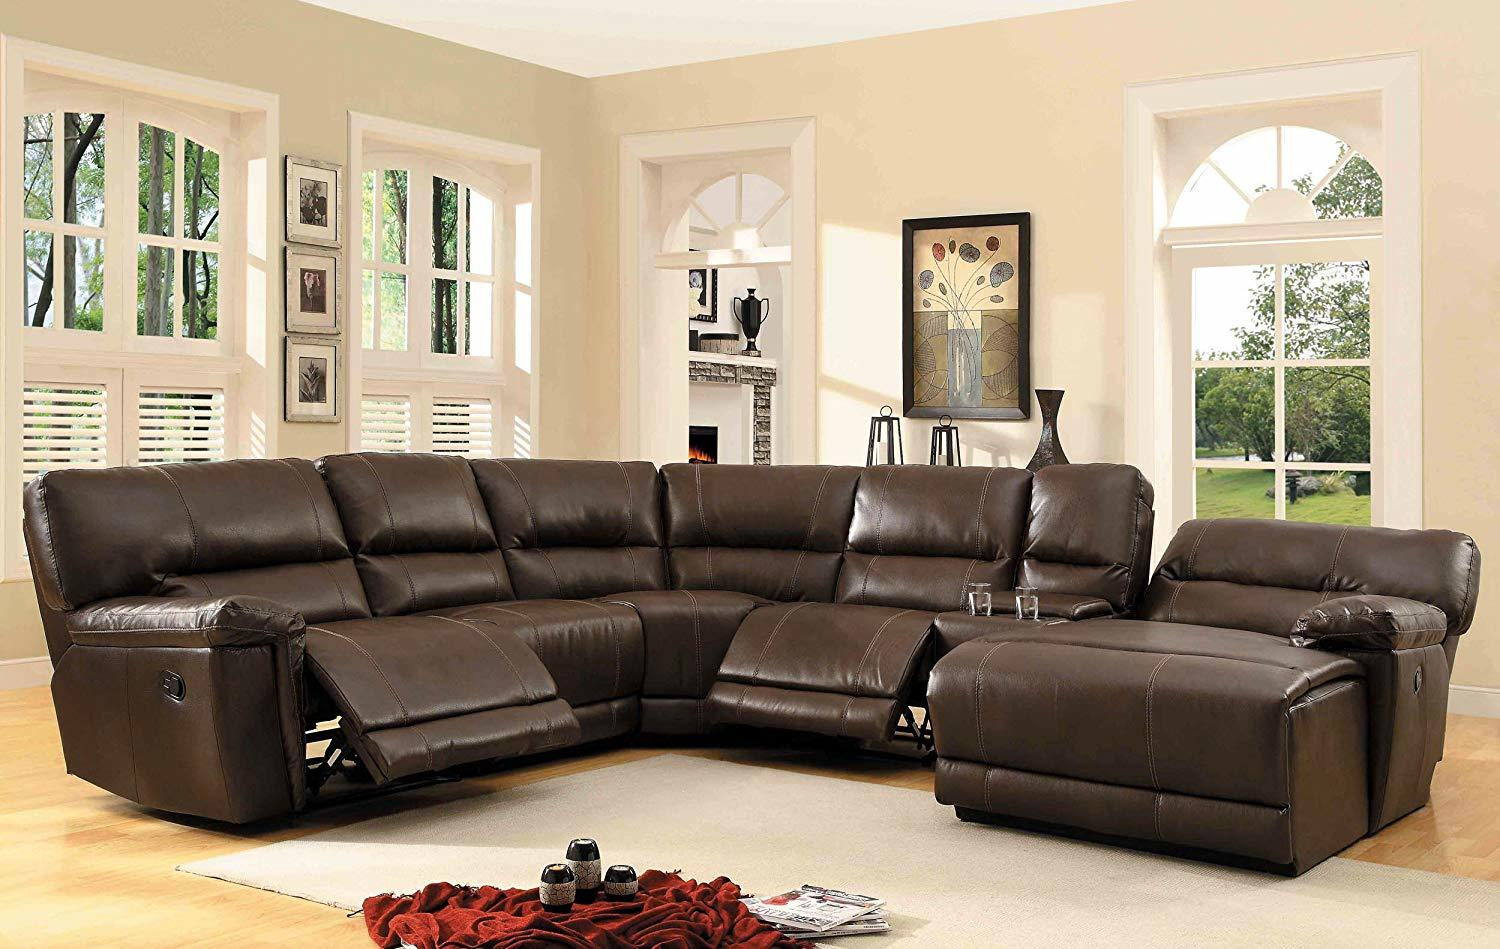 Best Couches Sectional: The Best Leather Couches, Best Leather Sofas, Best Leather